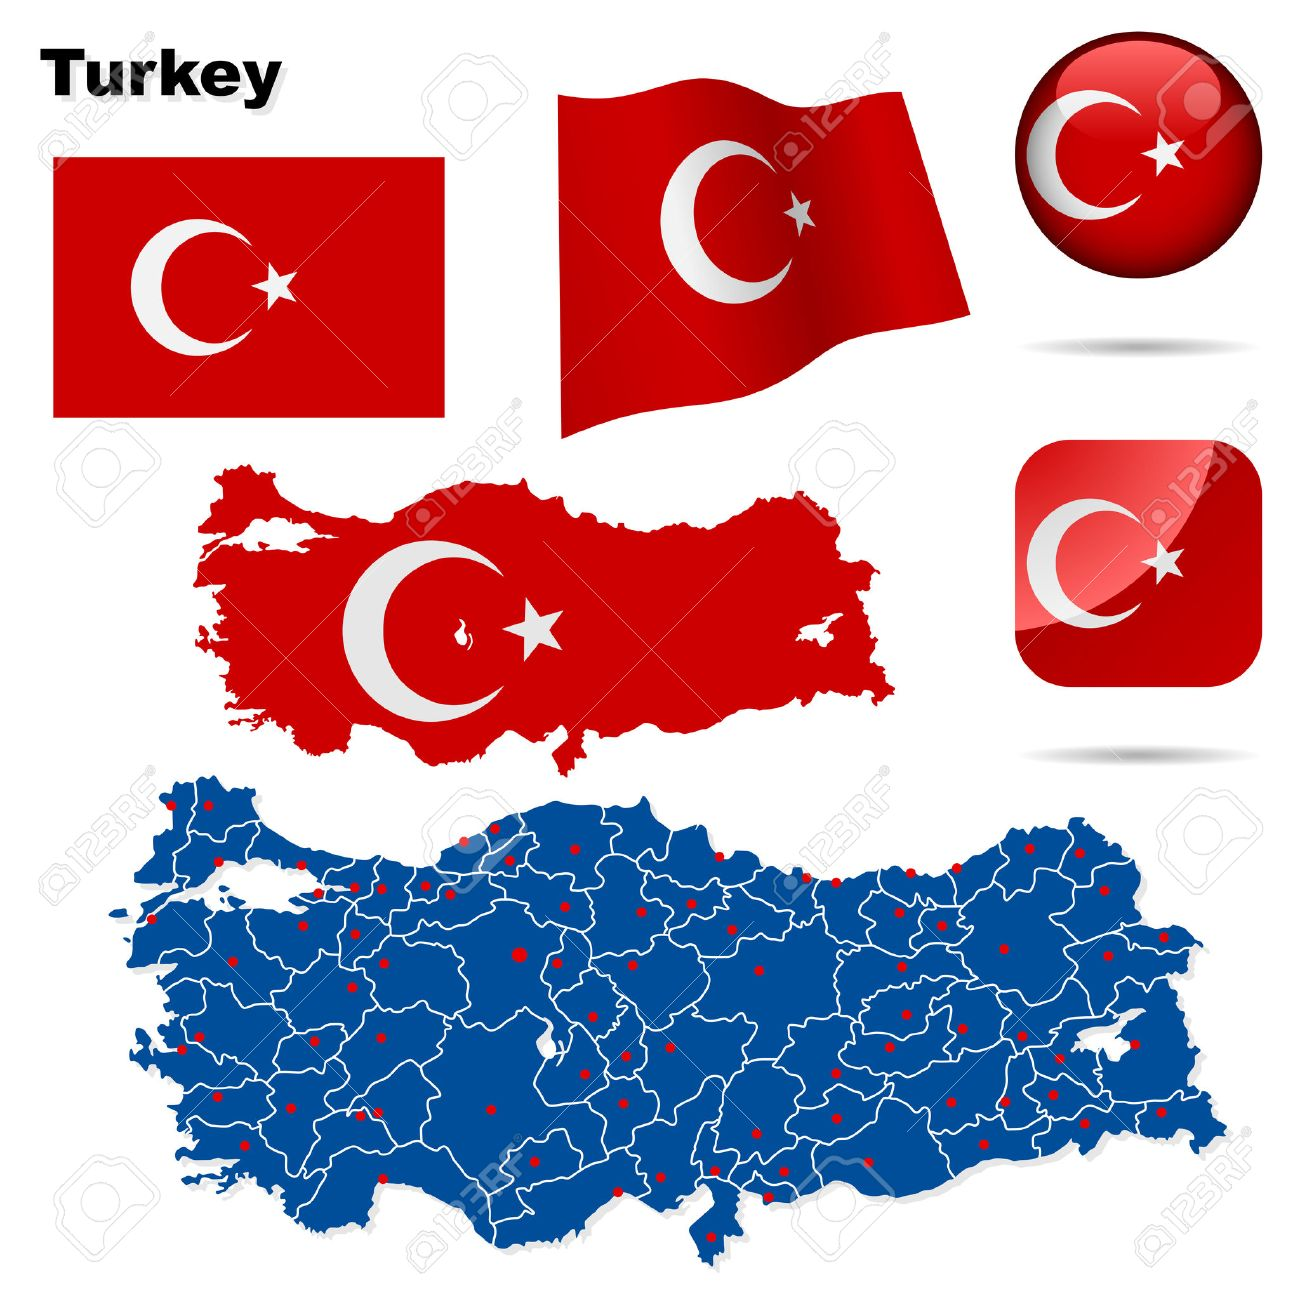 Turkey set. Detailed country shape with region borders, flags and icons isolated on white background. Stock Vector - 7180031